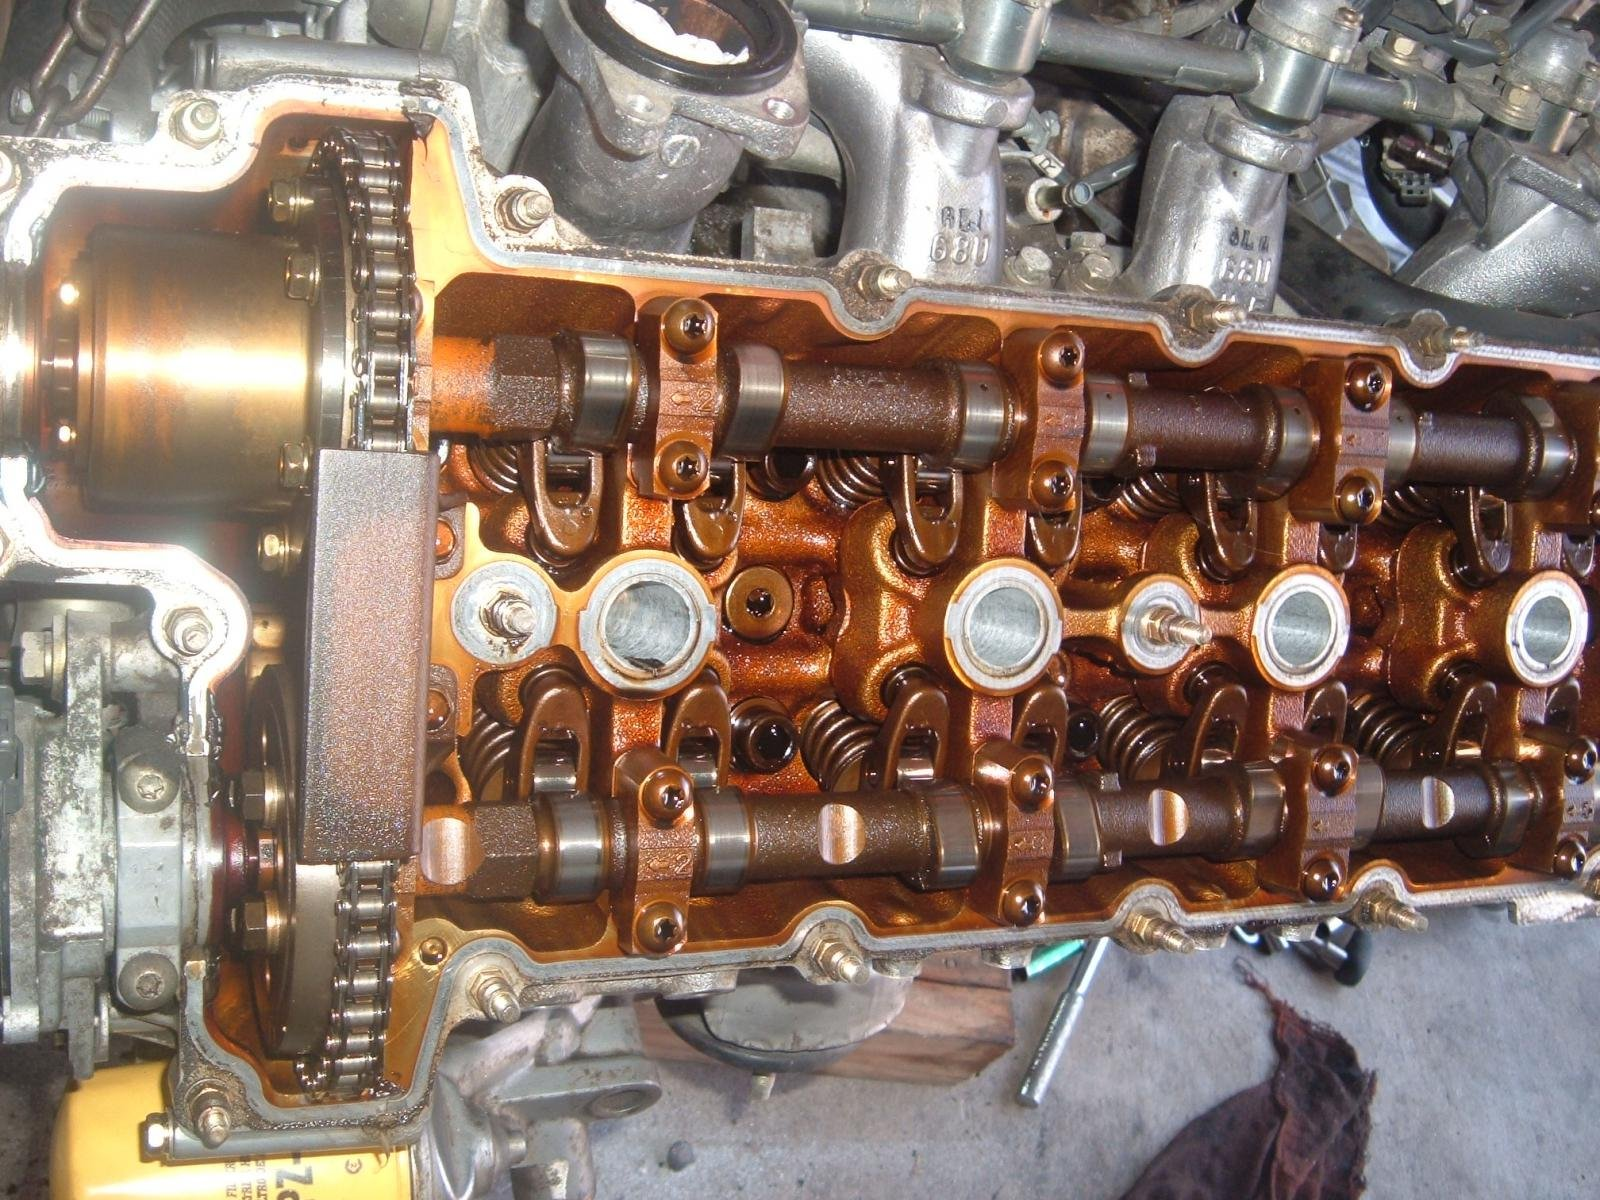 Going V8 Looking For Engine Wiring Diagrams Sychmatics